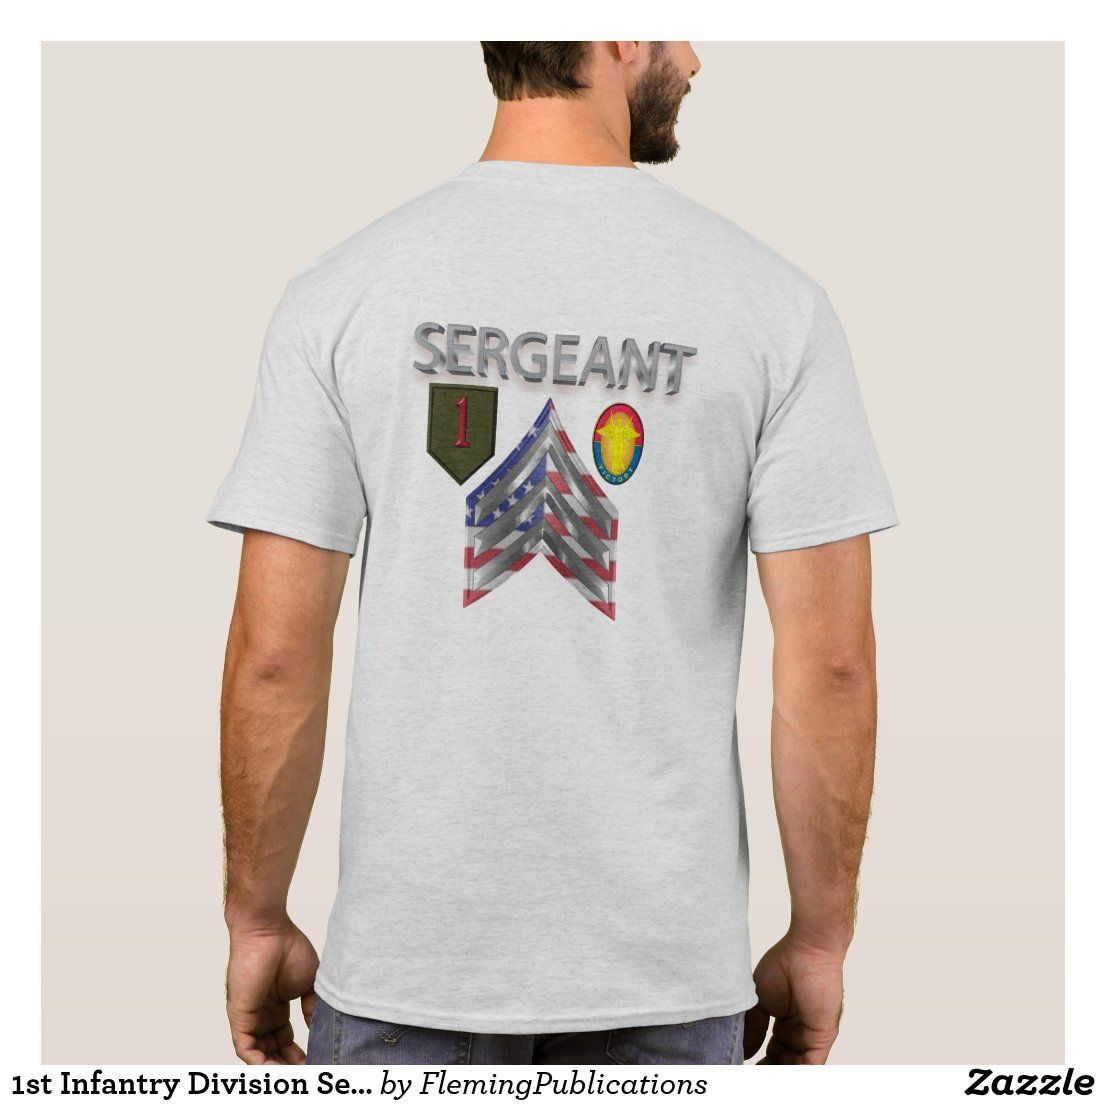 1st infantry division sergeant tshirt in